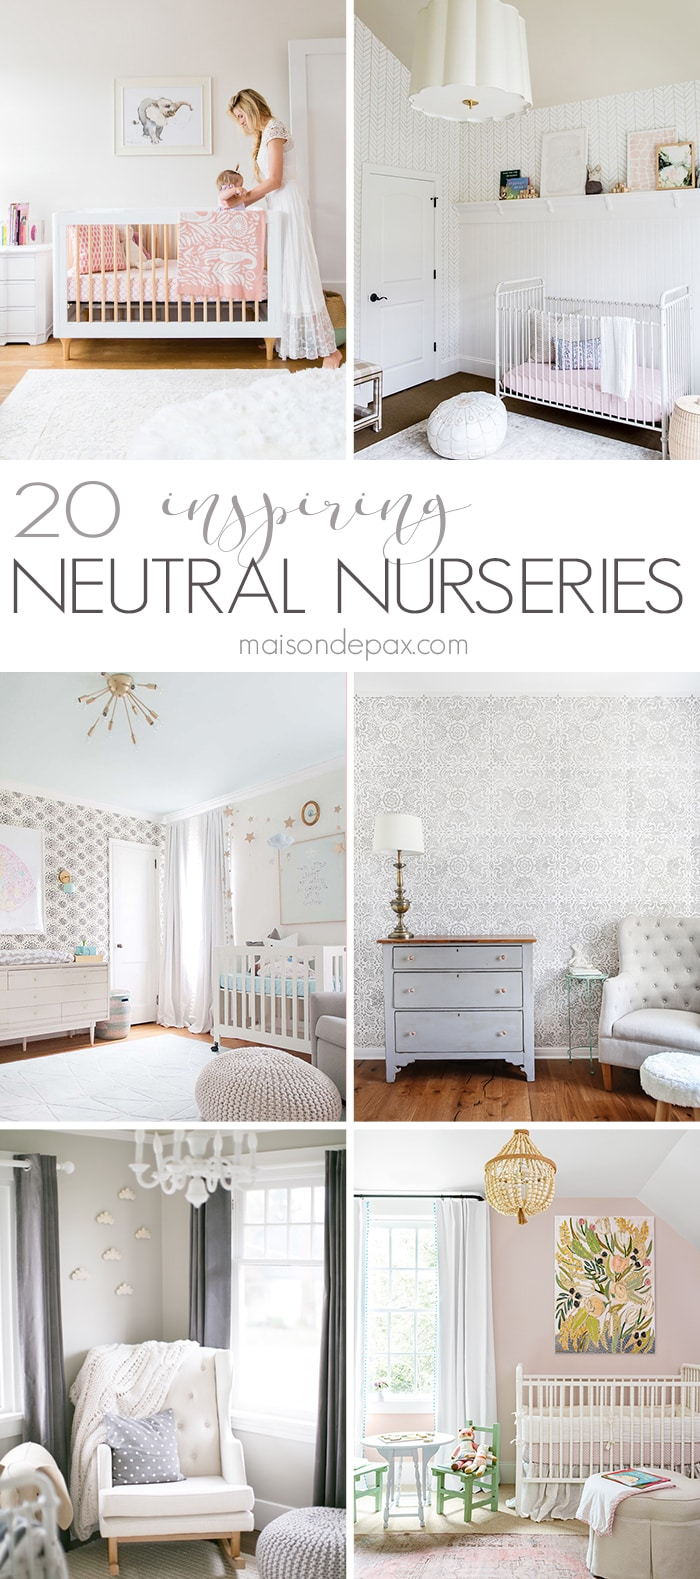 20 Neutral Baby Nurseries- Maison de Pax